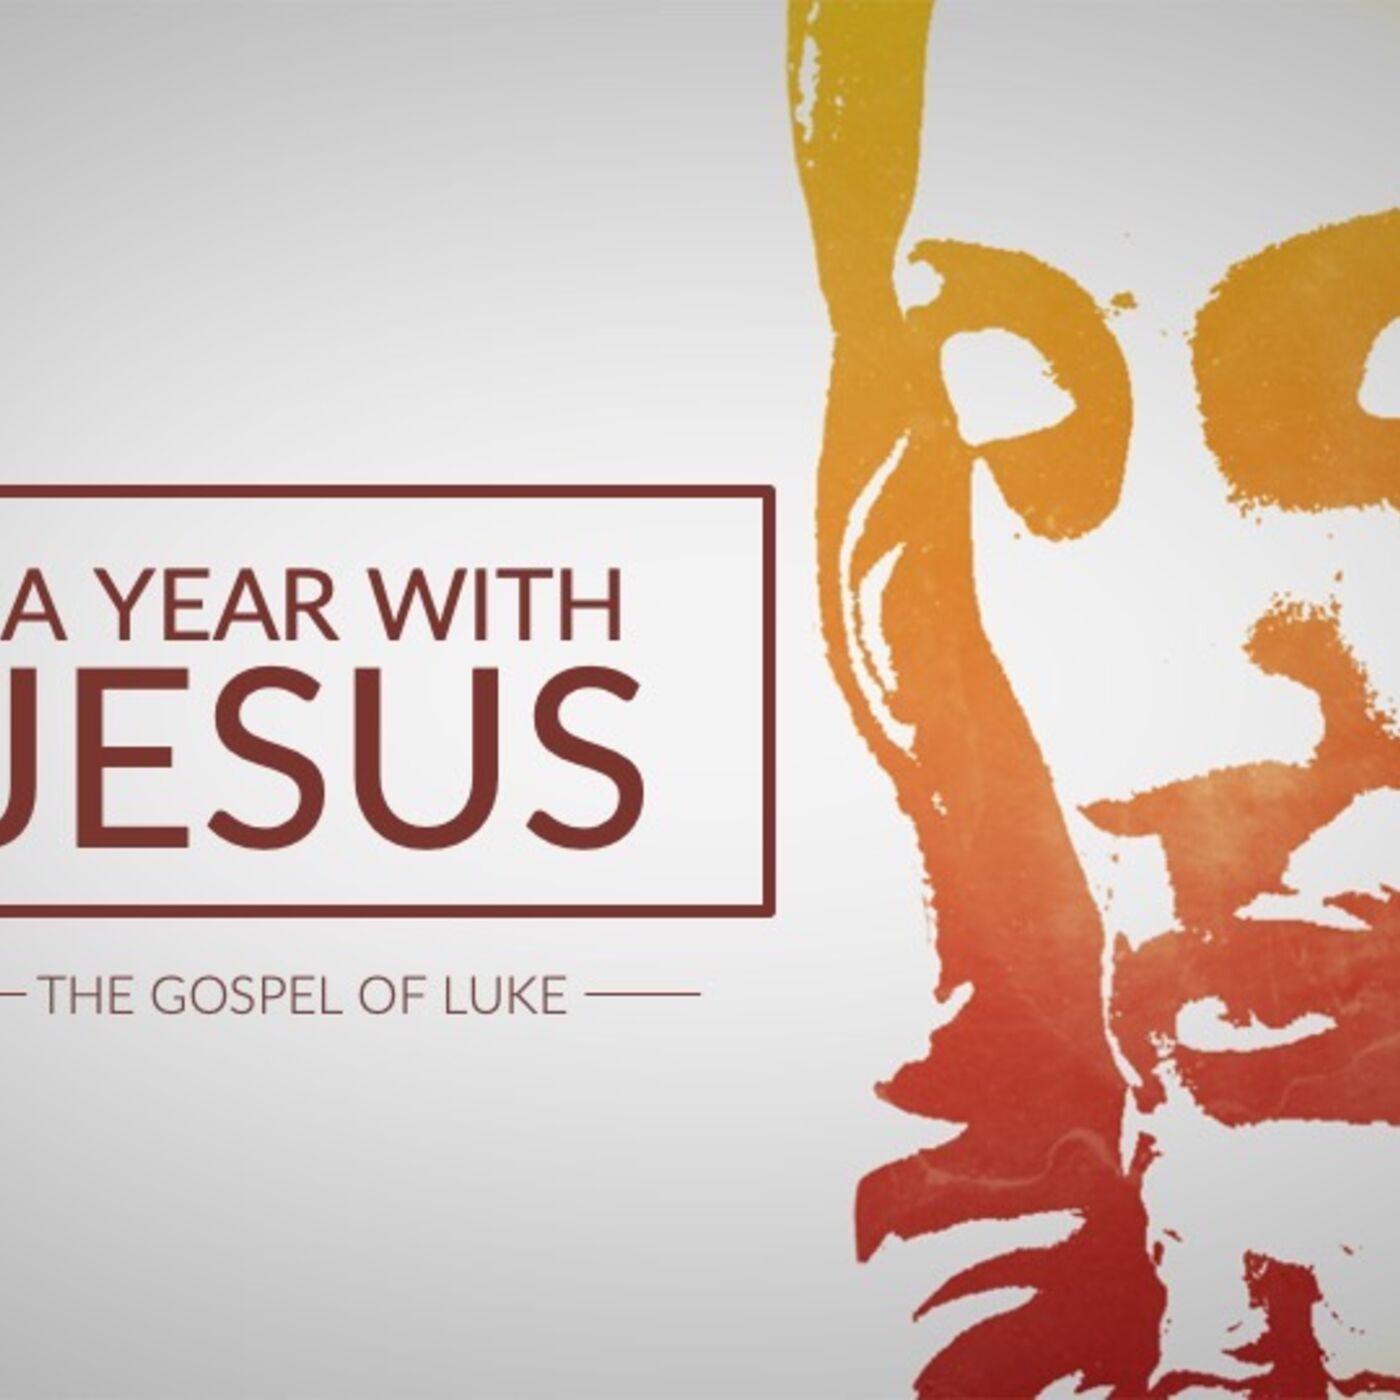 A Year With Jesus: Three Parables That Illustrate The Heart Of God (Luke 15:1-32)